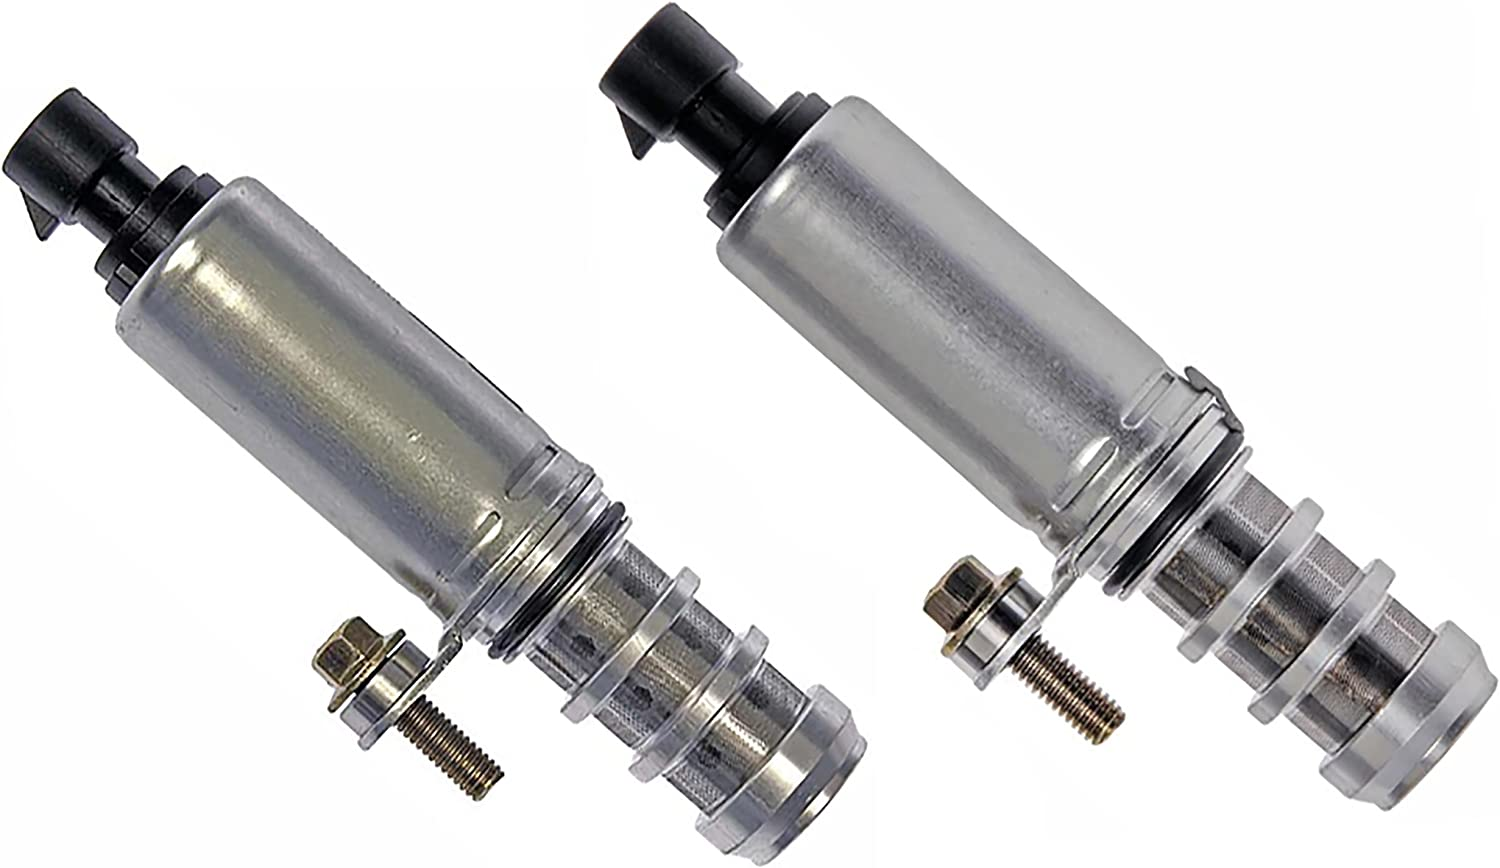 Variable Valve Timing Solenoid >> Apdty 028326 028327 Vvt Variable Valve Timing Solenoid Left Right Fits 2 0 2 2l 2 4l Ecotec Engine Intake Exhaust Replaces 12655420 12655421